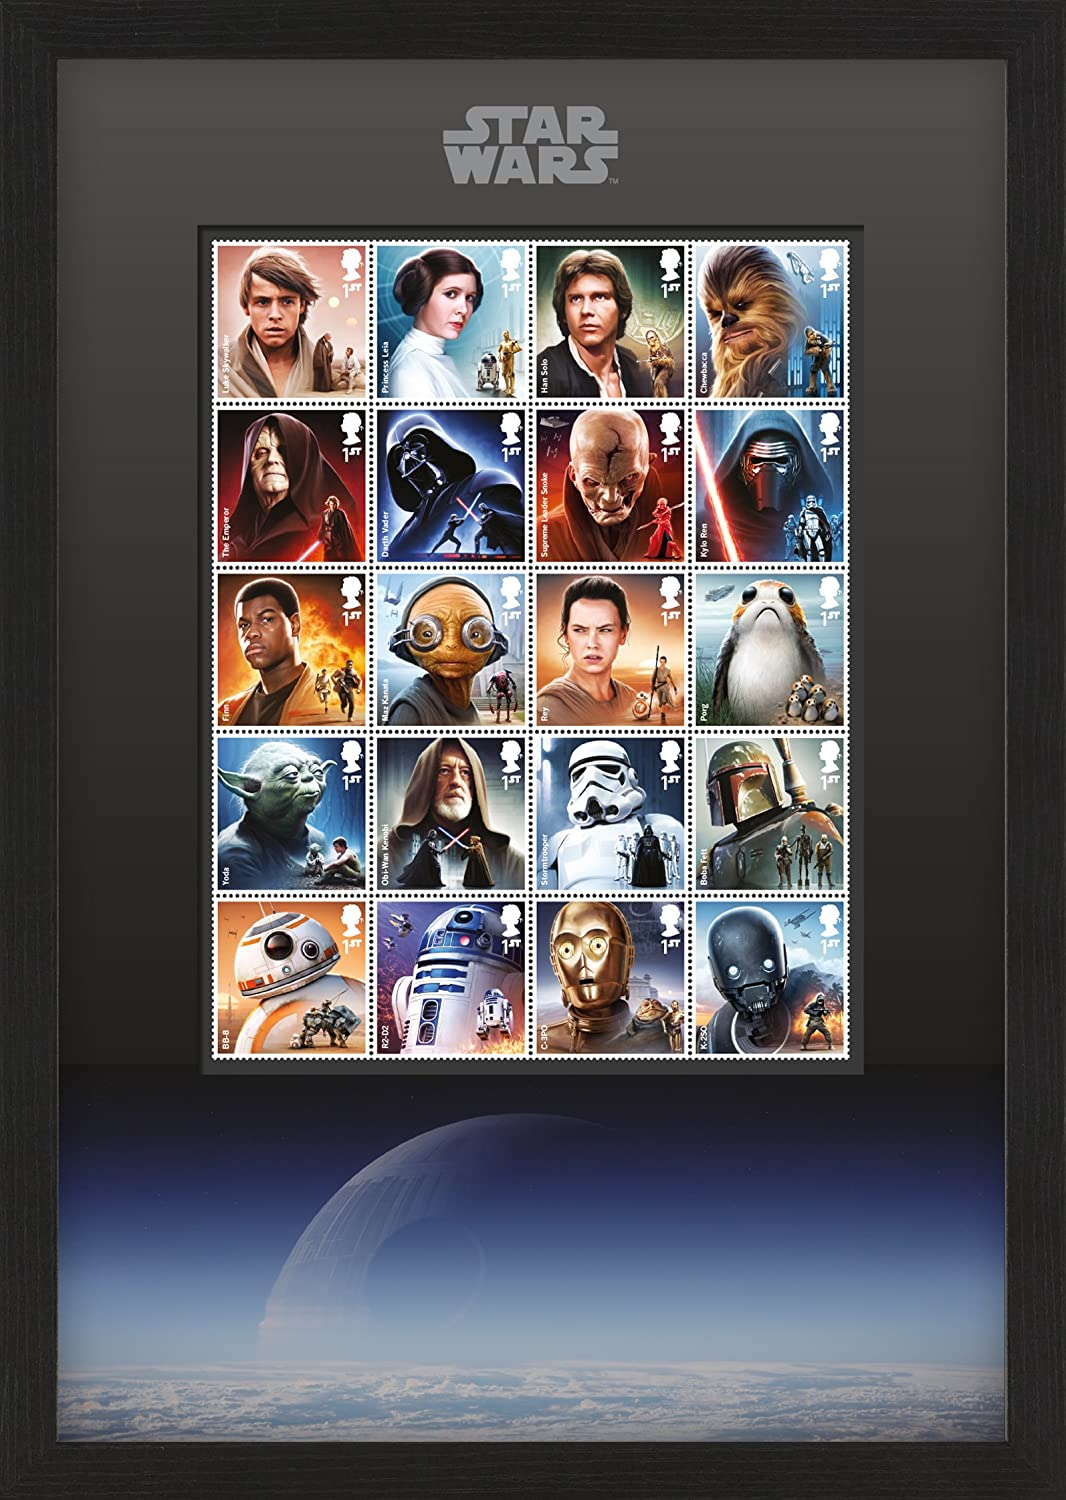 Star Wars N3111 2015 and 2017 Framed Character Stamps Royal Mail